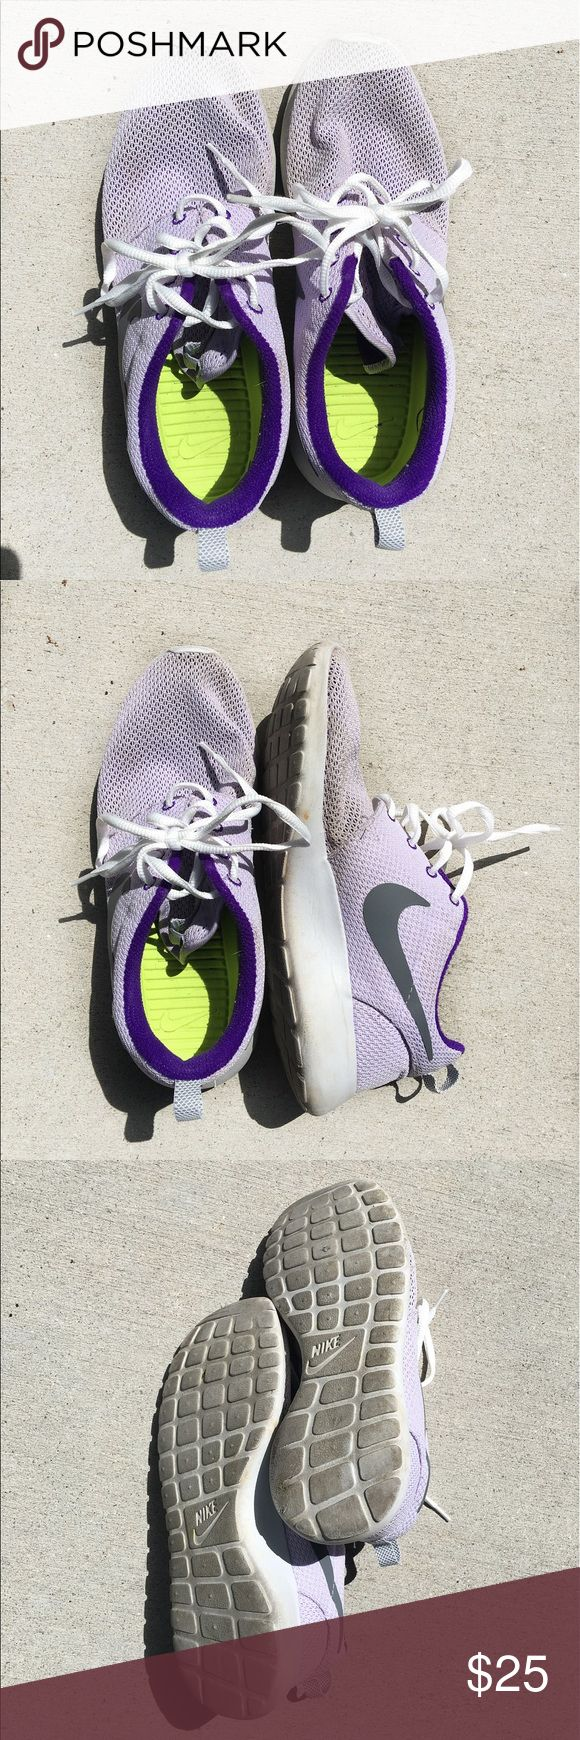 Lavender Nike Roshe Runs Lavender Roshe Runs that are in good condition. There are no holes, but they do show some areas of discoloration. These rare finds still have love to give! Nike Shoes Sneakers